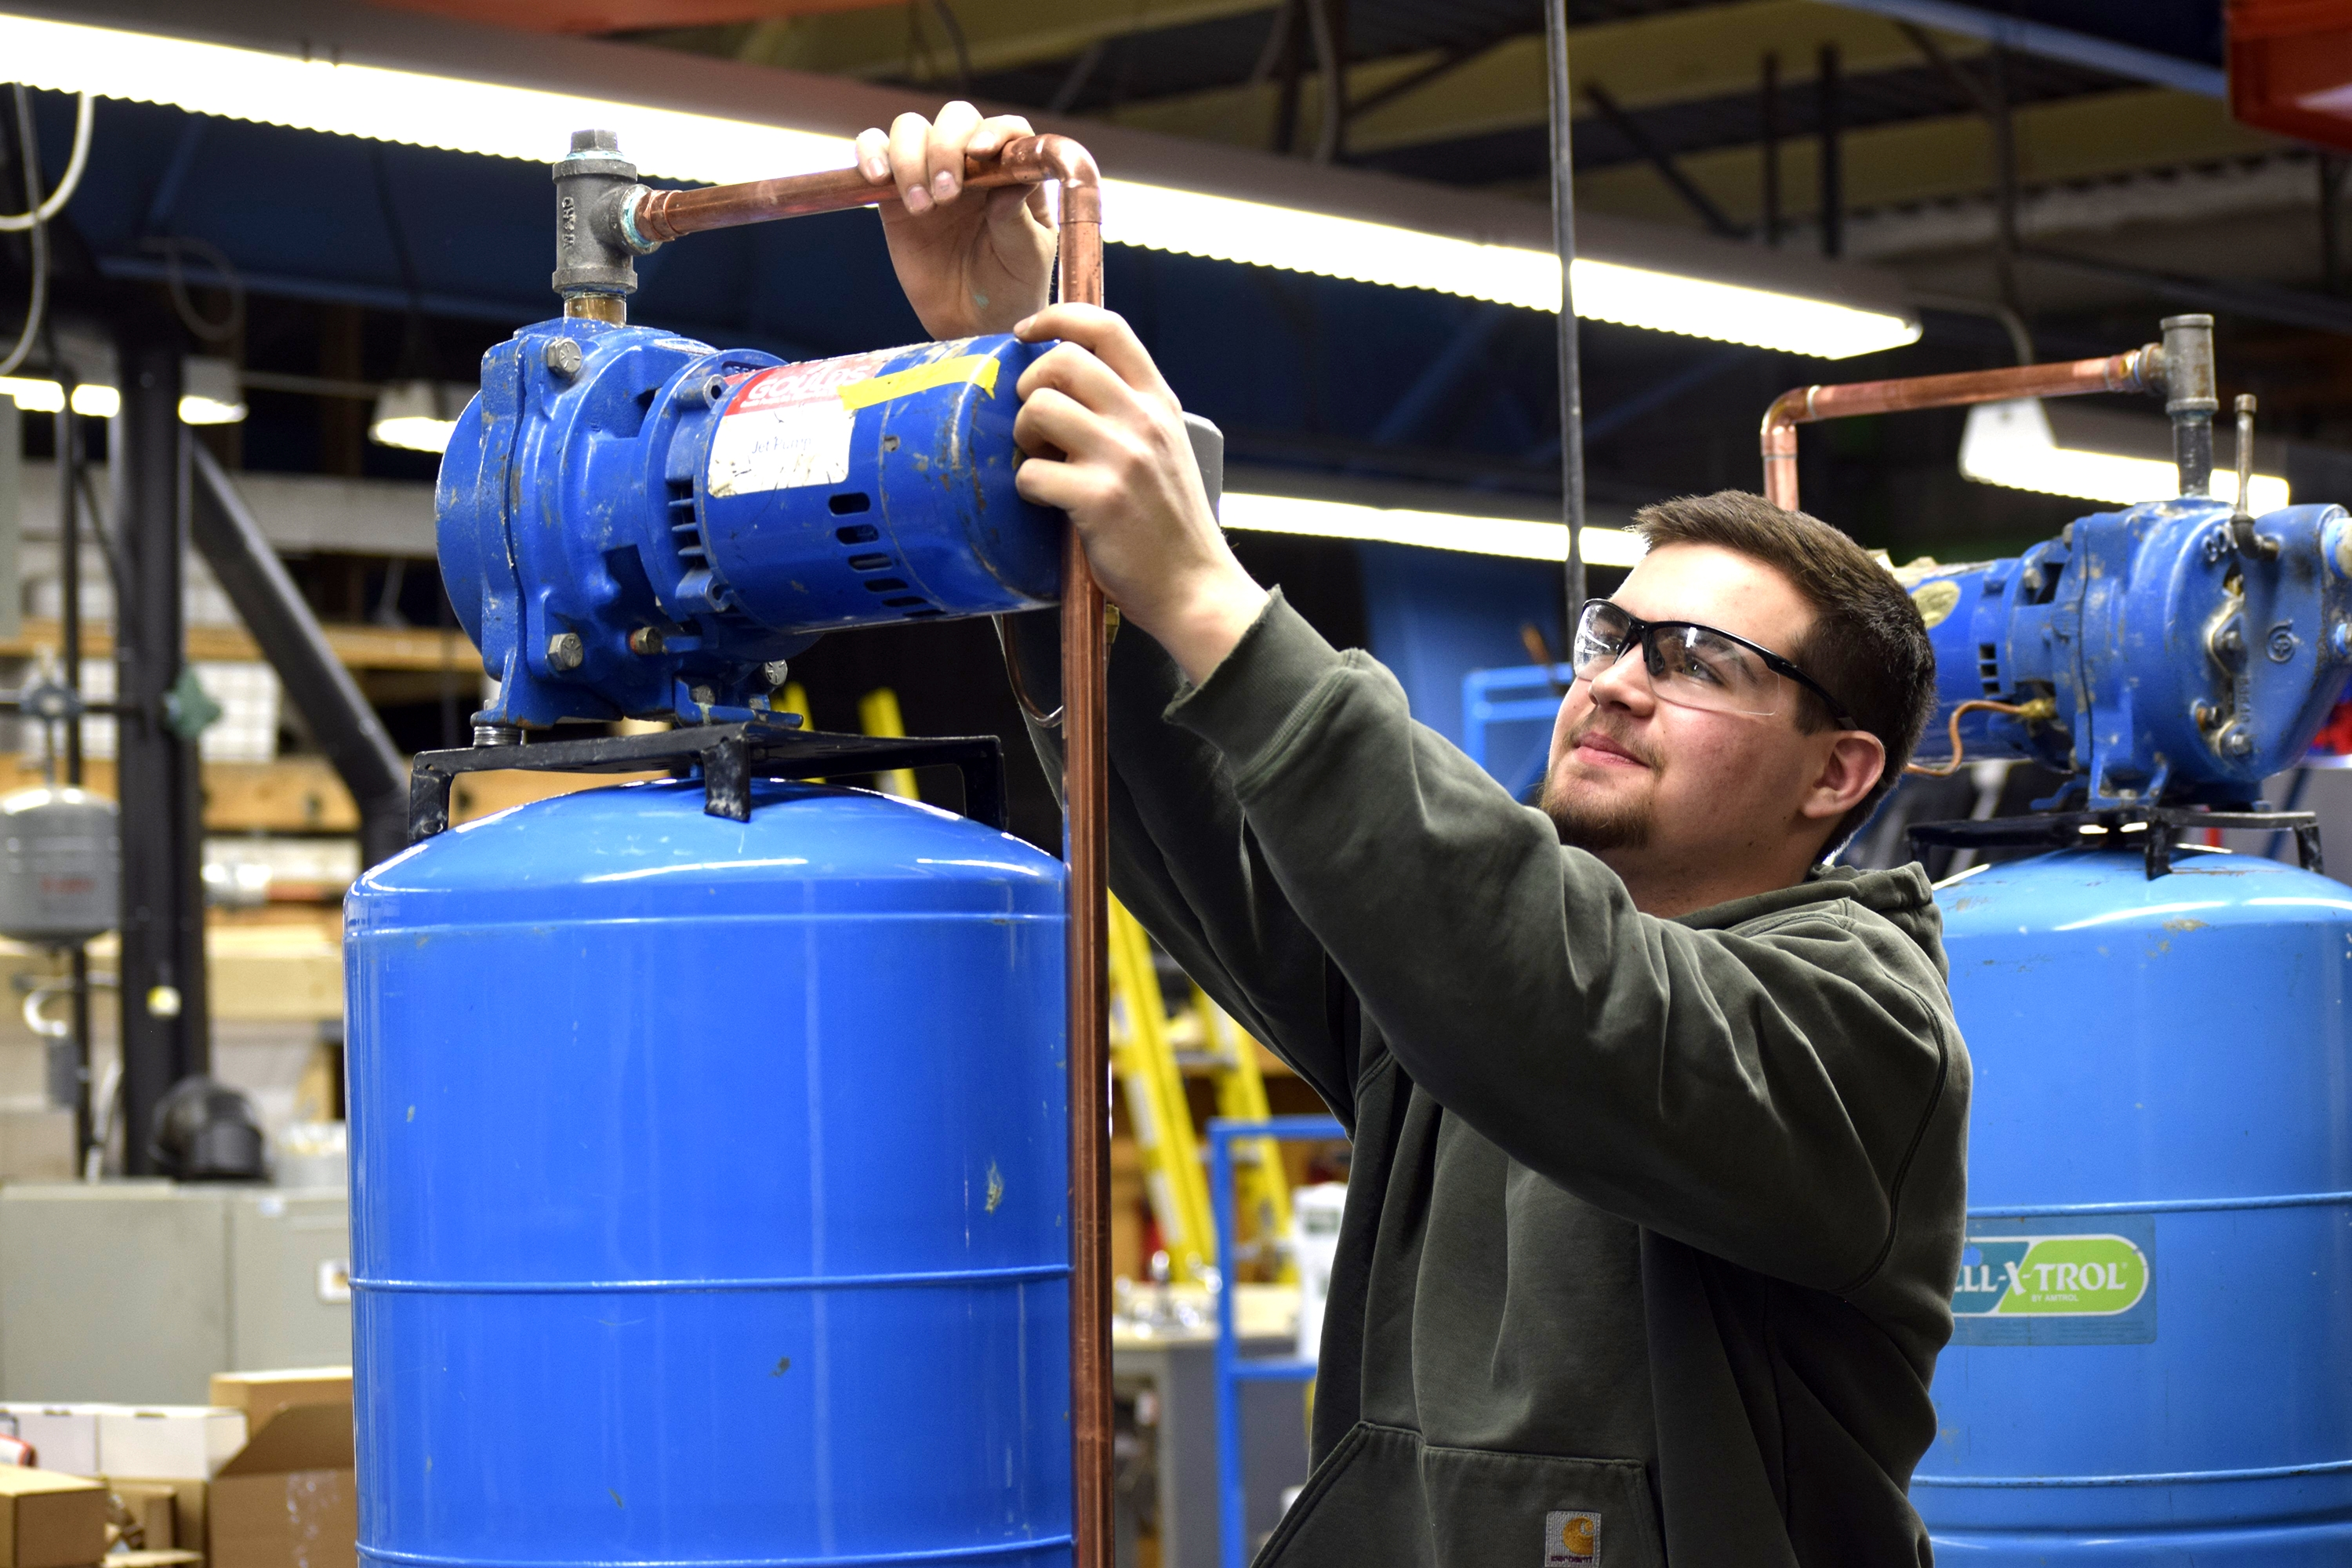 Plumbing and Heating - Northern Maine Community College